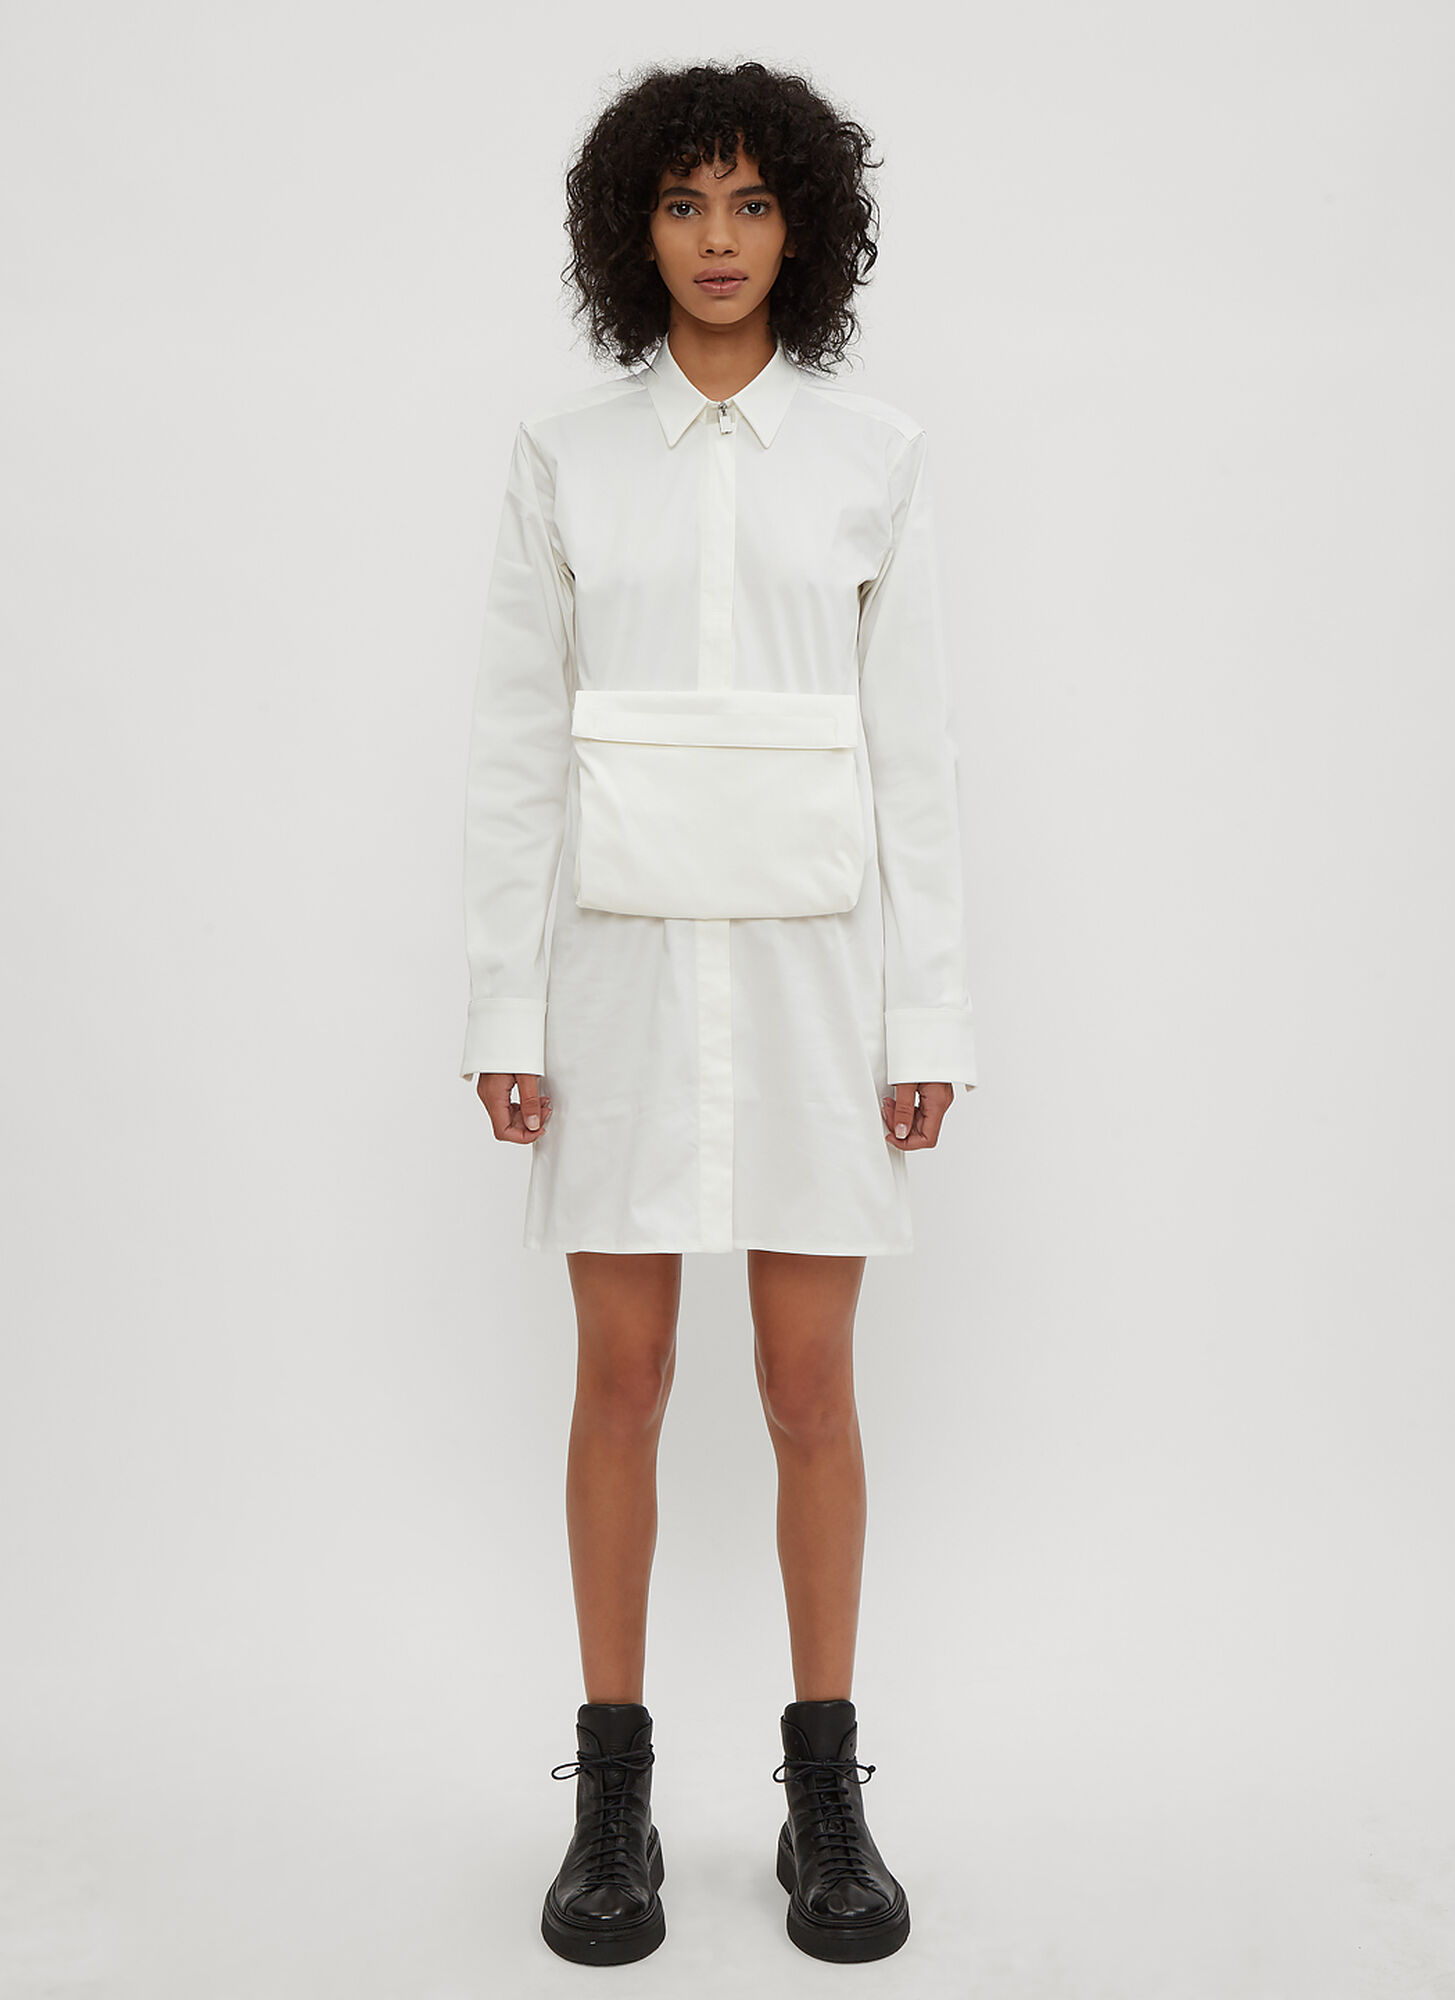 1017 ALYX 9SM Scout Pouch Shirt Dress in White size IT - 38